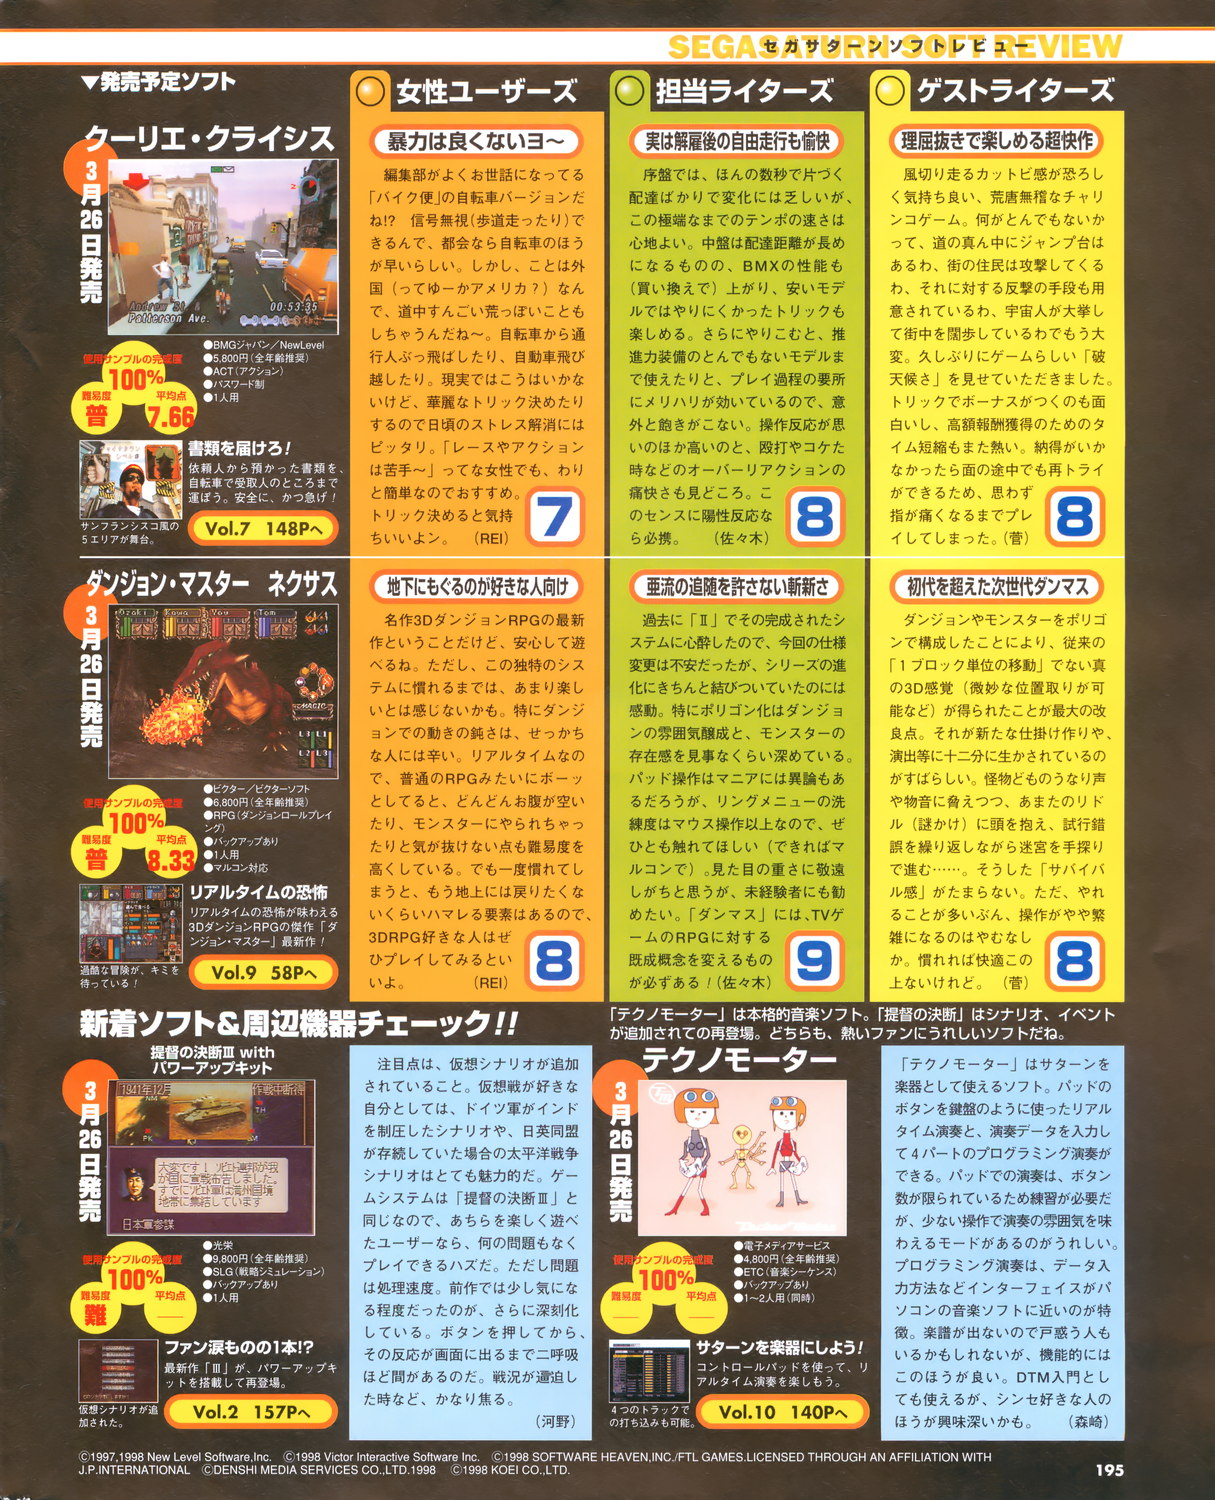 Dungeon Master Nexus Review published in Japanese magazine 'Sega Saturn Magazine', Vol 10 03 April 1998, Page 195